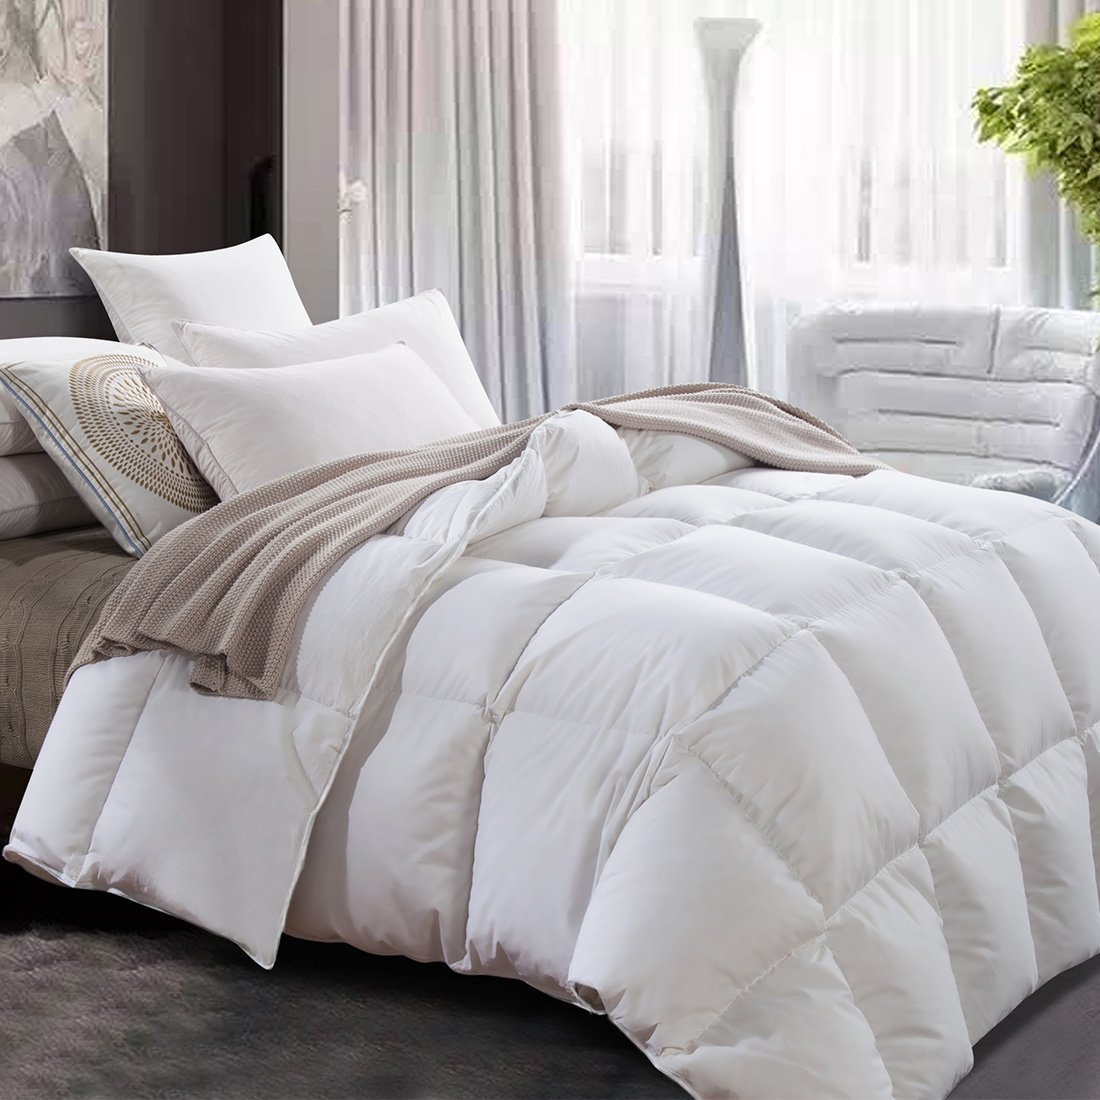 ROYALAY Luxurious All-Seasons White Goose Down Comforter-Solid